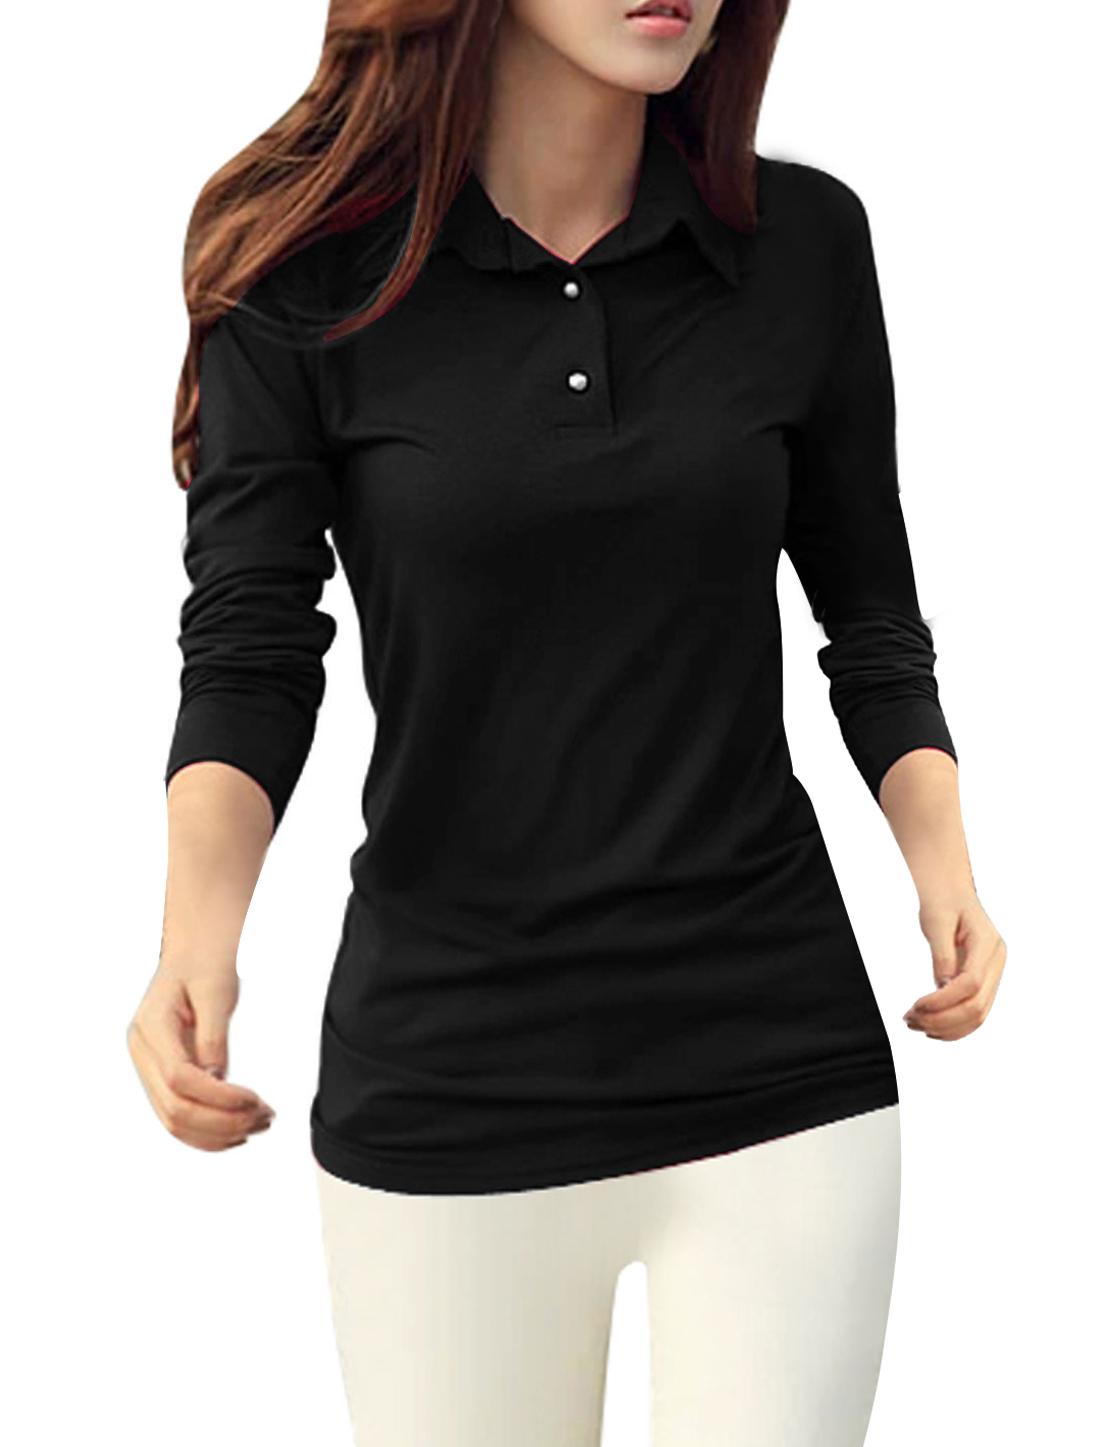 Women Point Collar V-neckline Button Upper Shirts Black M